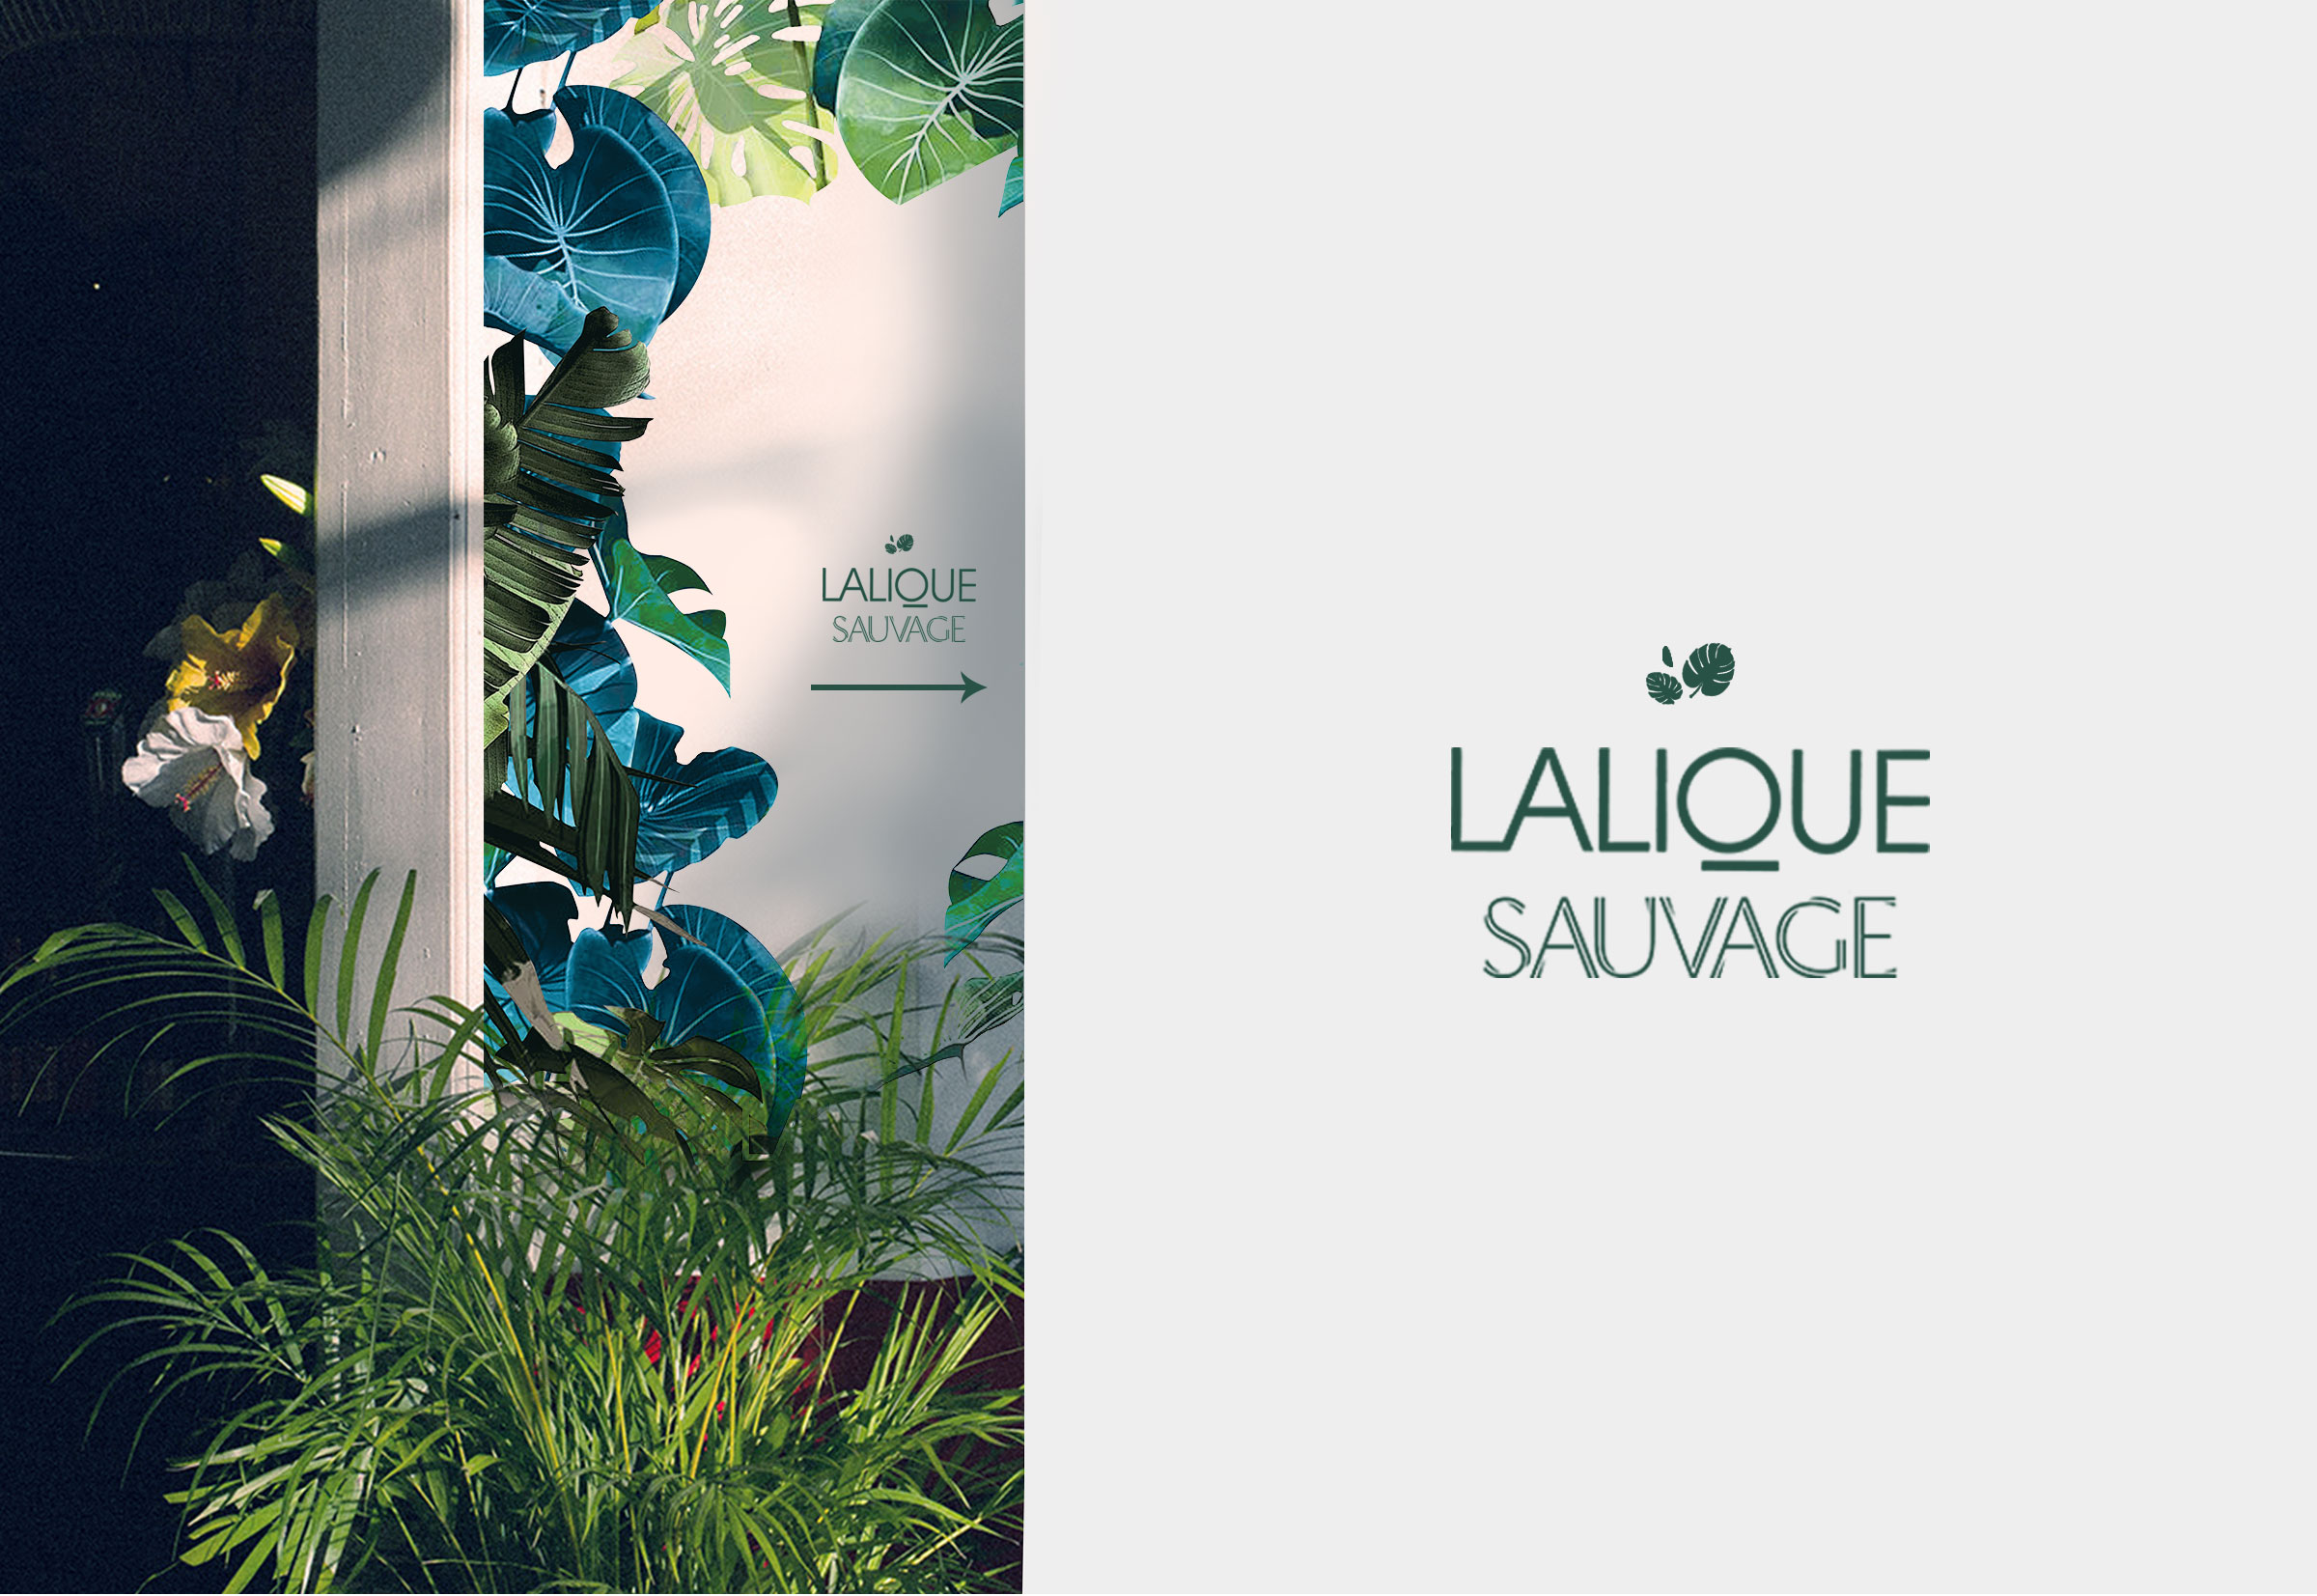 lalique-sauvage_15.jpg